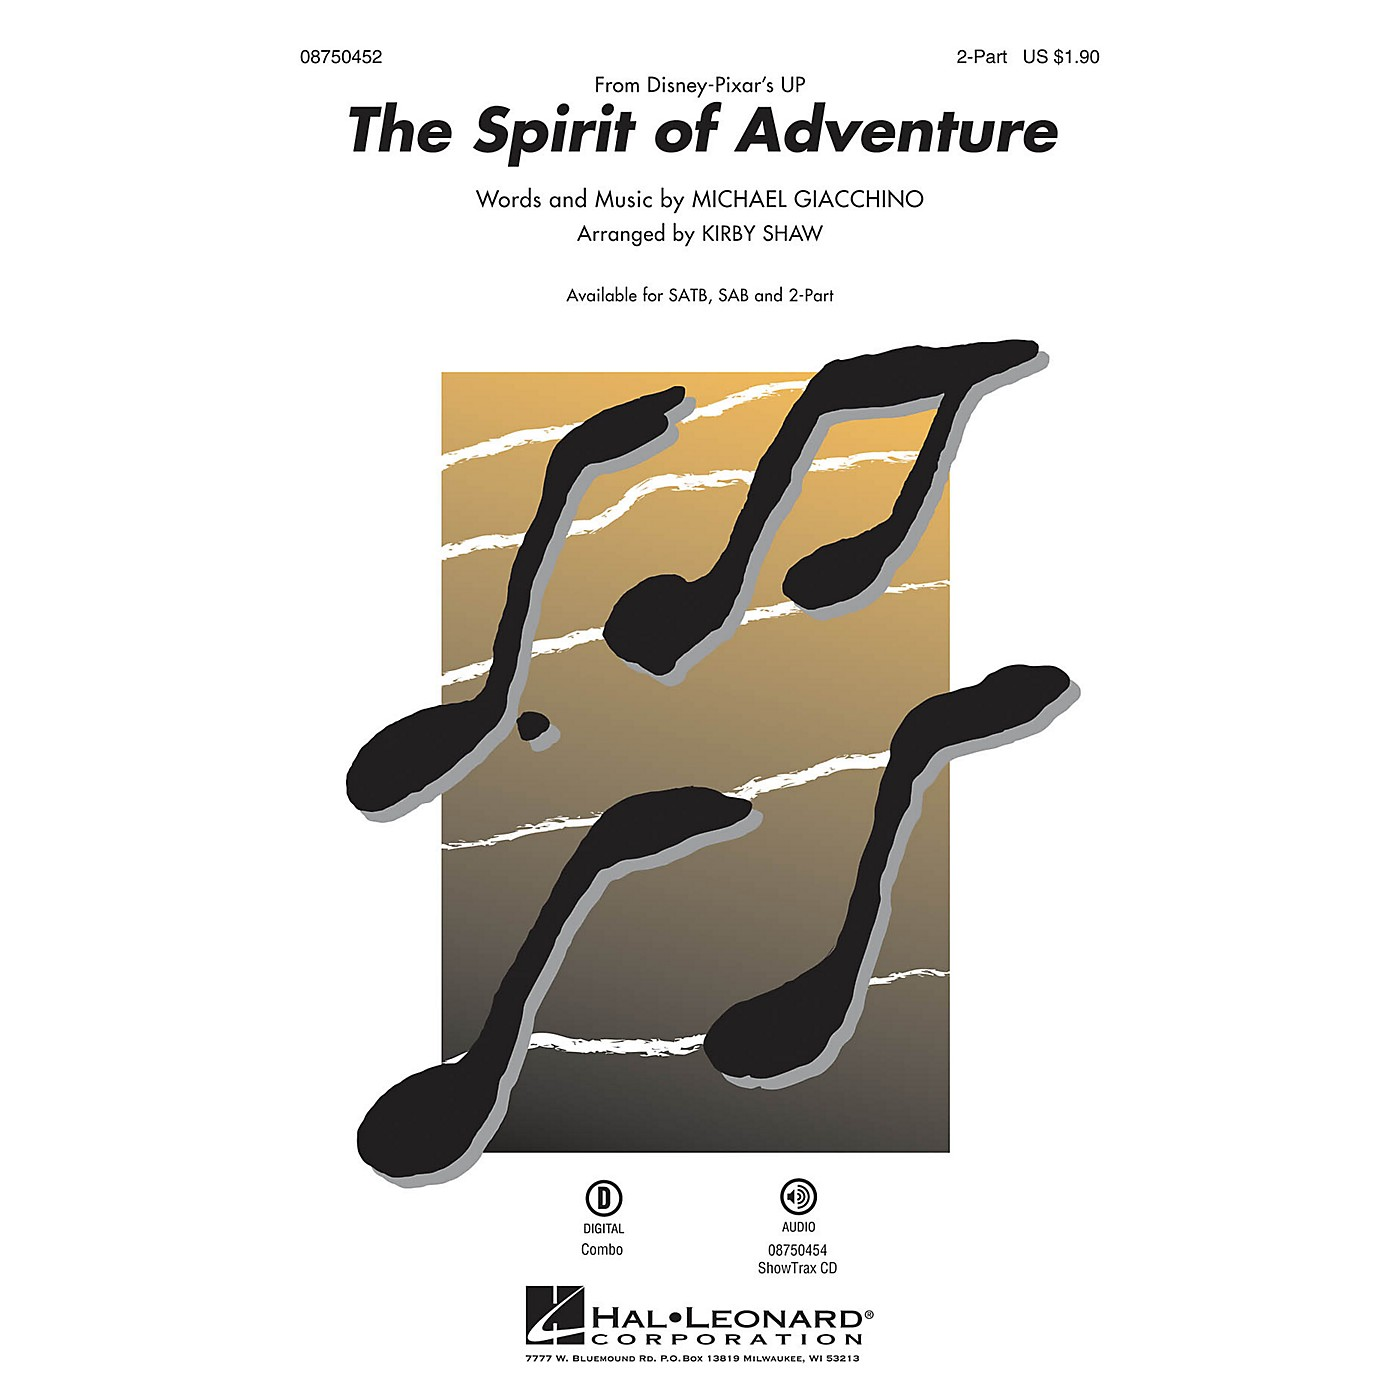 Hal Leonard The Spirit of Adventure (from Up) 2-Part arranged by Kirby Shaw thumbnail